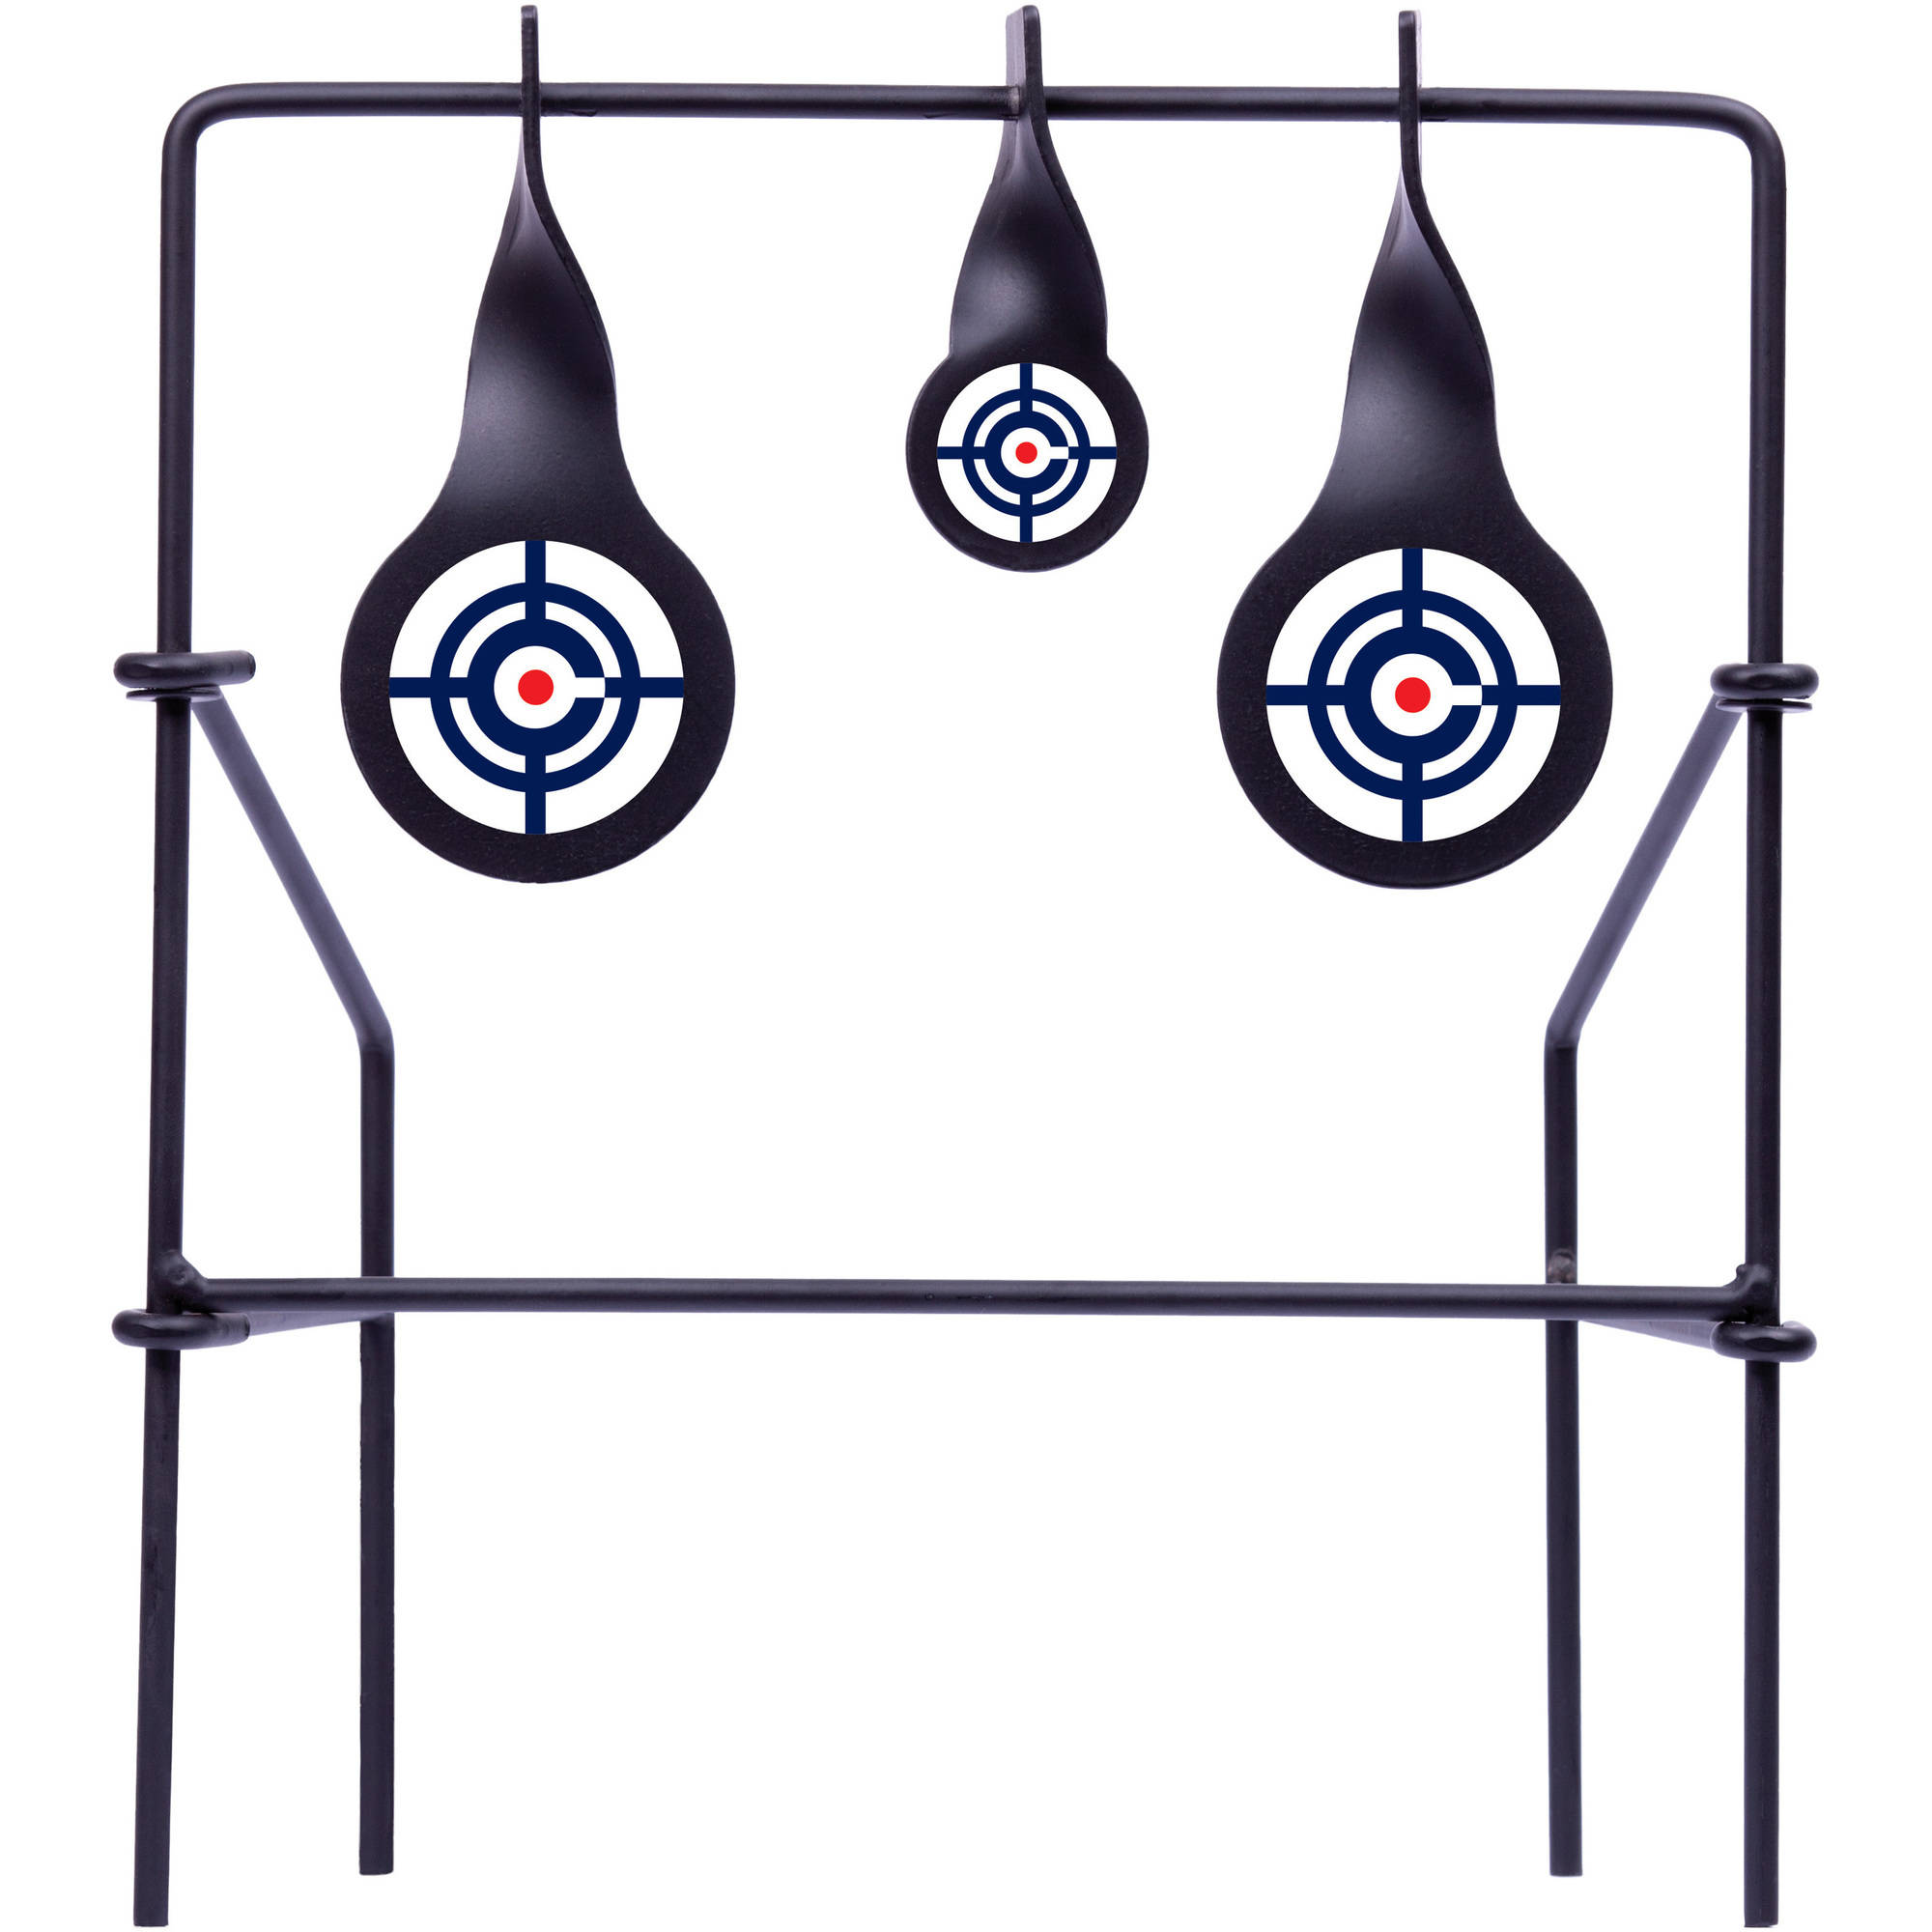 Crosman Spinning Target Shooting System, All-Metal